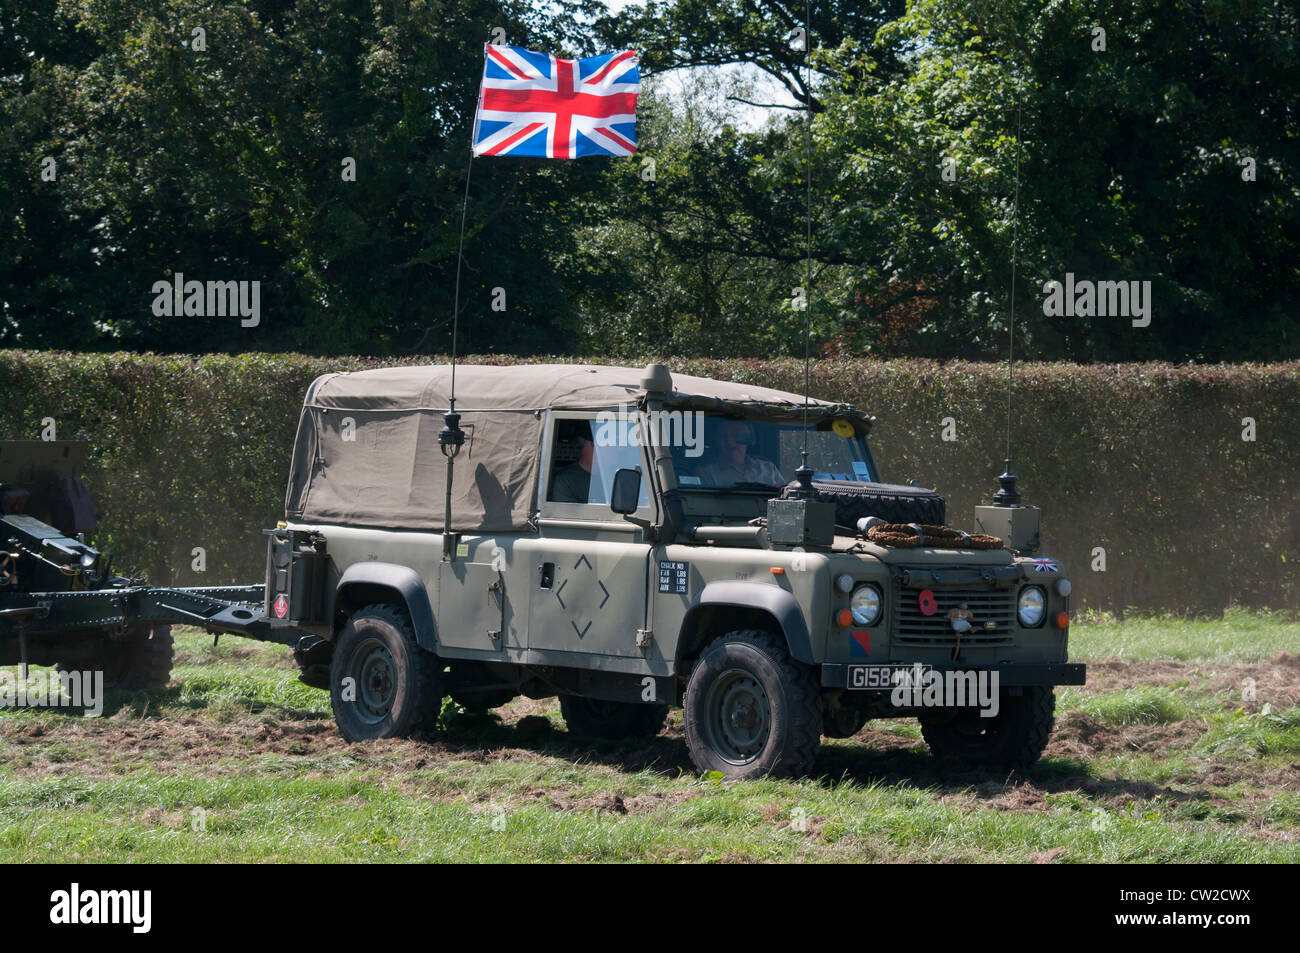 British Army Landrover - Stock Image